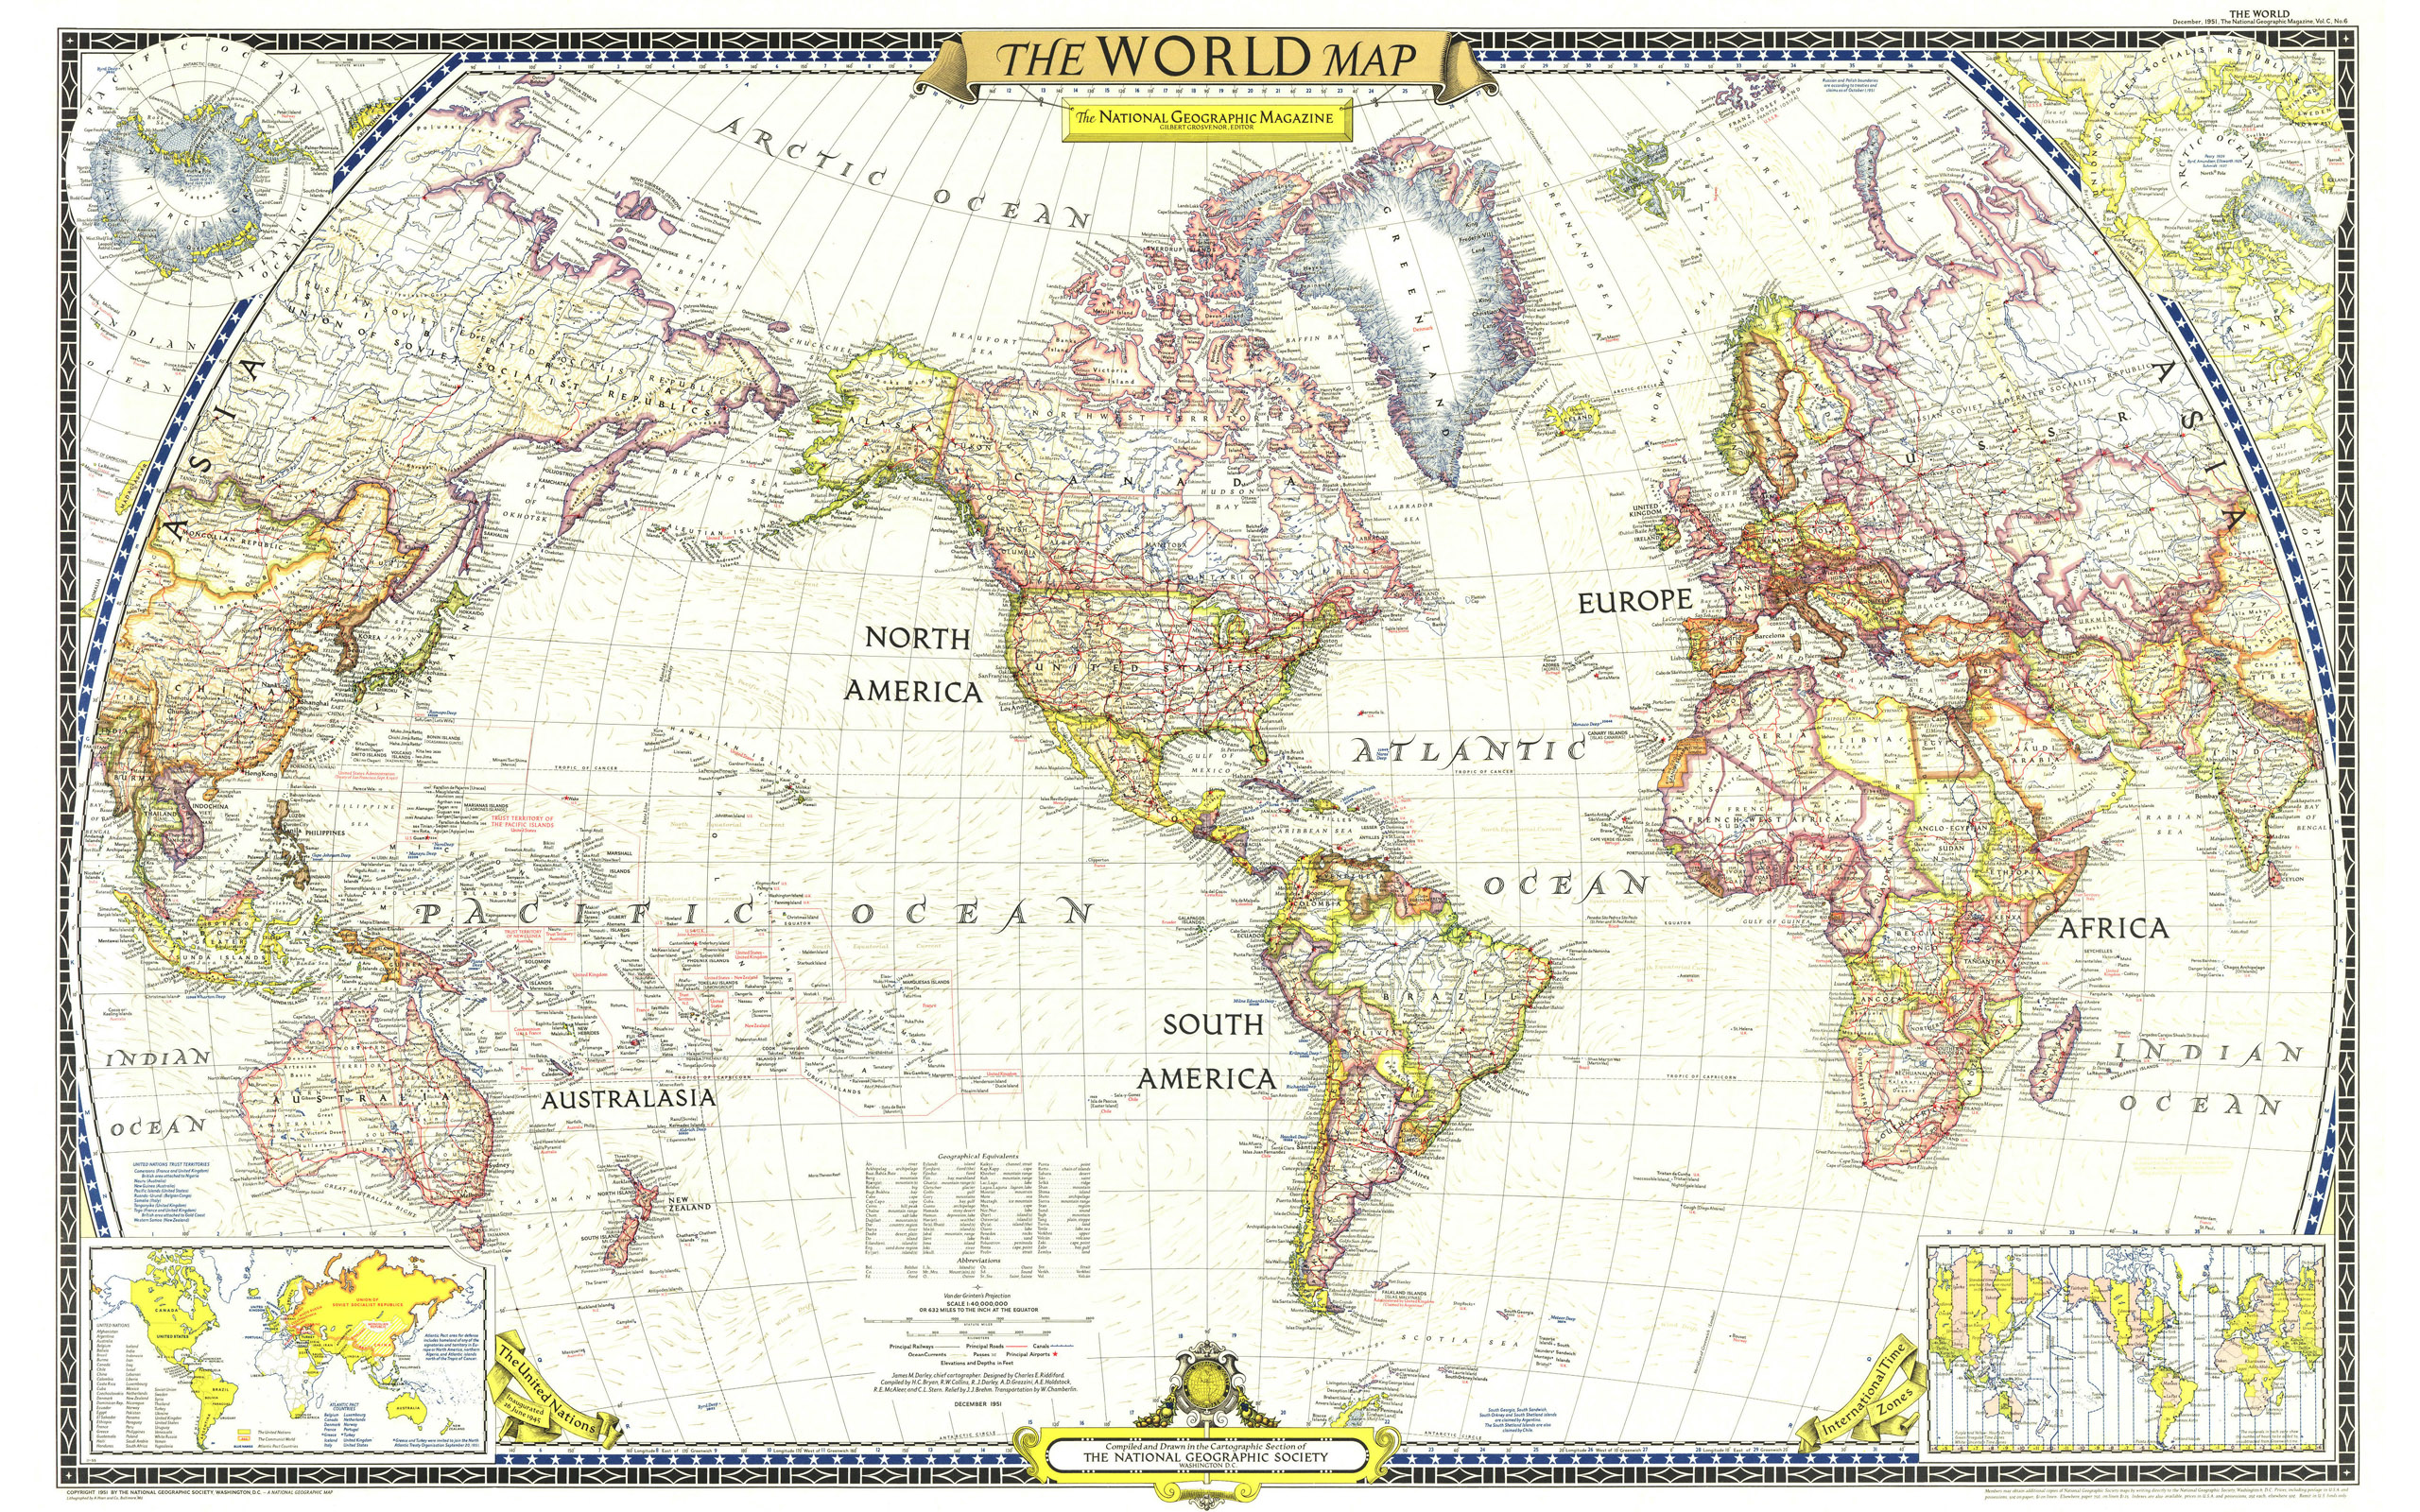 Large world map 15198 earth star others large world map 15198 gumiabroncs Images